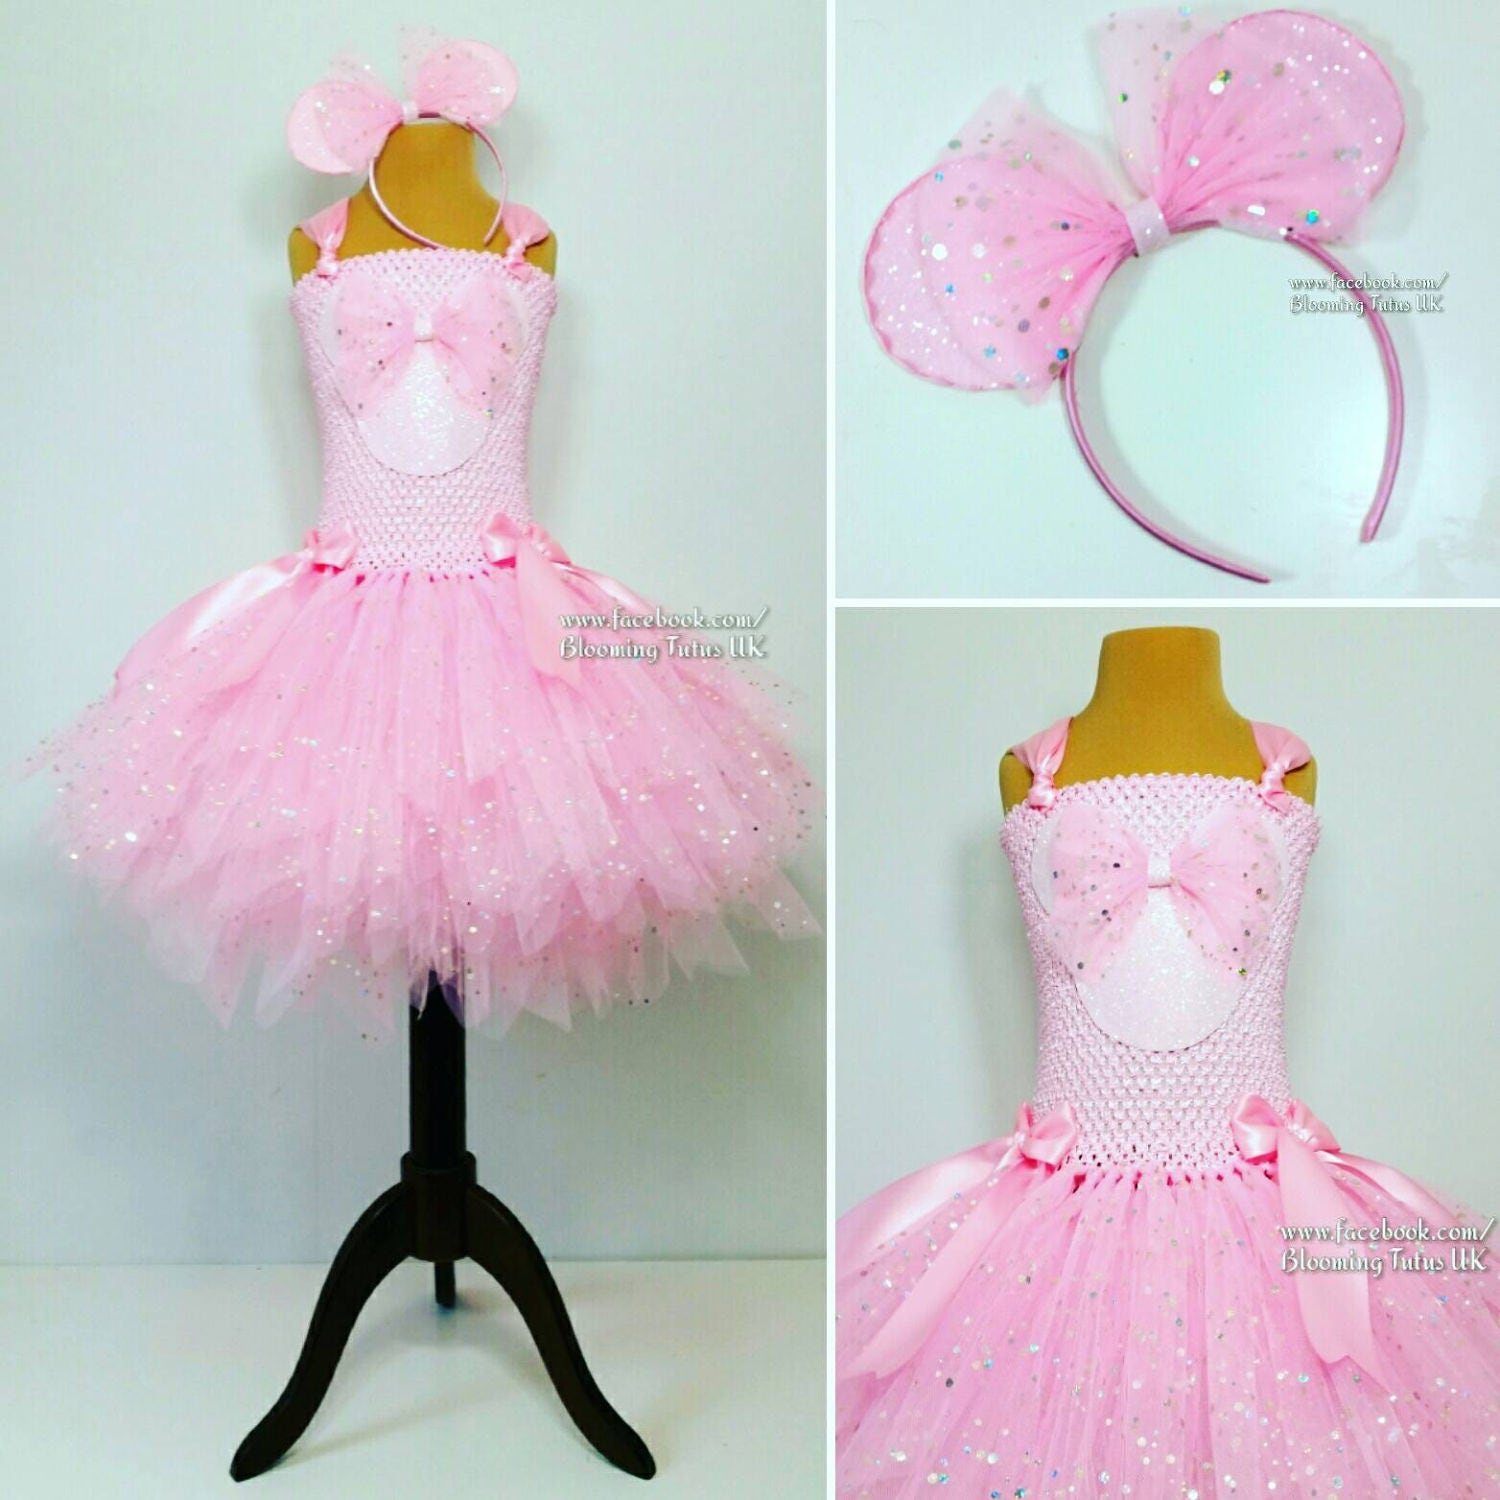 Mouse Super Sparkly Tutu Dress with Sparkly Ears headbandBirthday Party Pageant Fancy Dress Princess